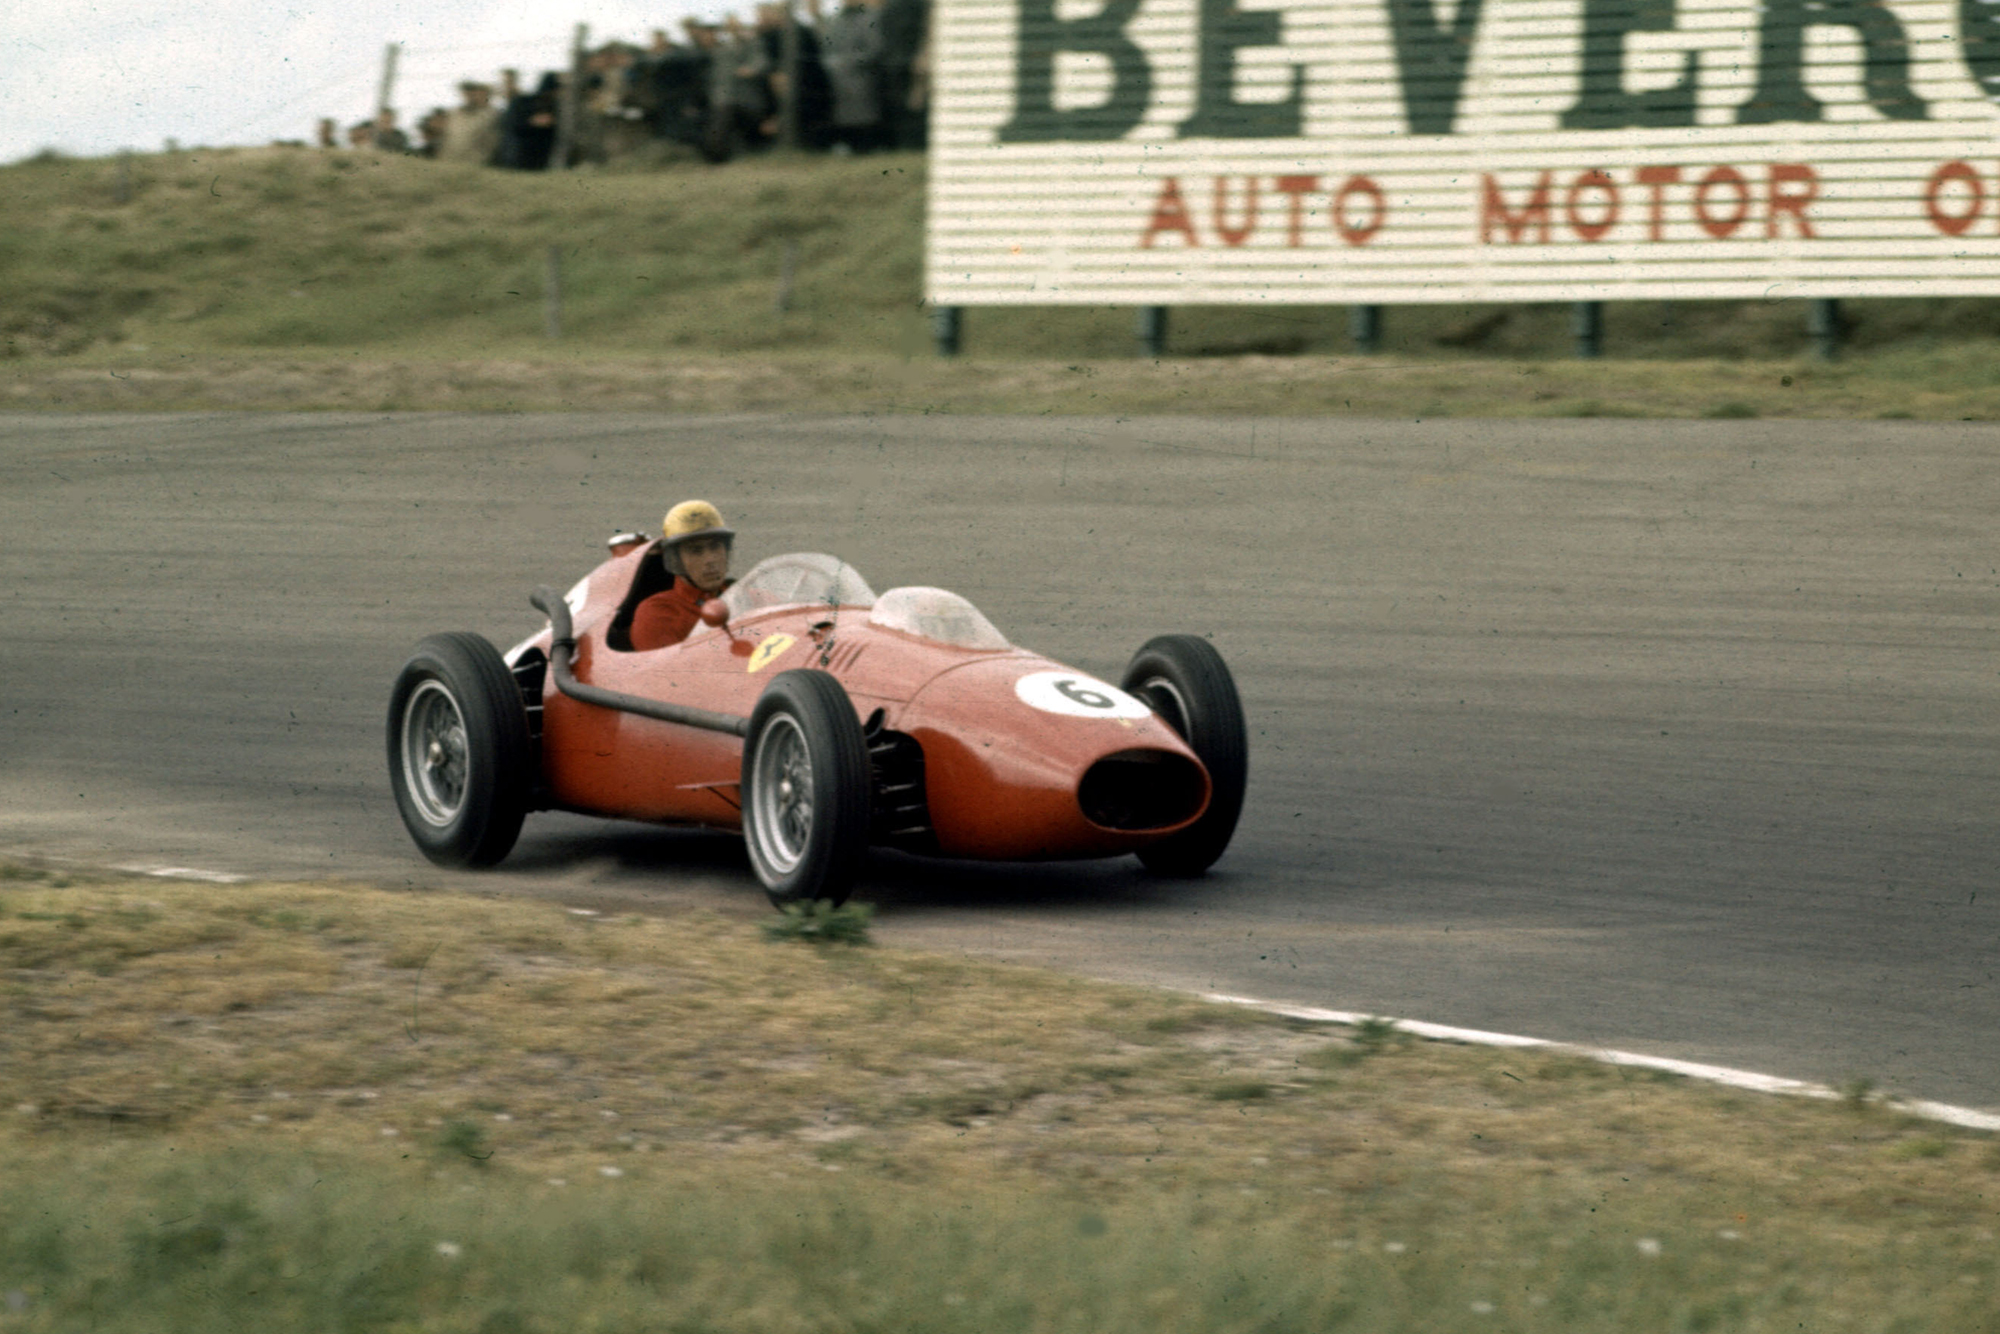 Luigi Musso in a Ferrari Dino 246 who finished in 7th